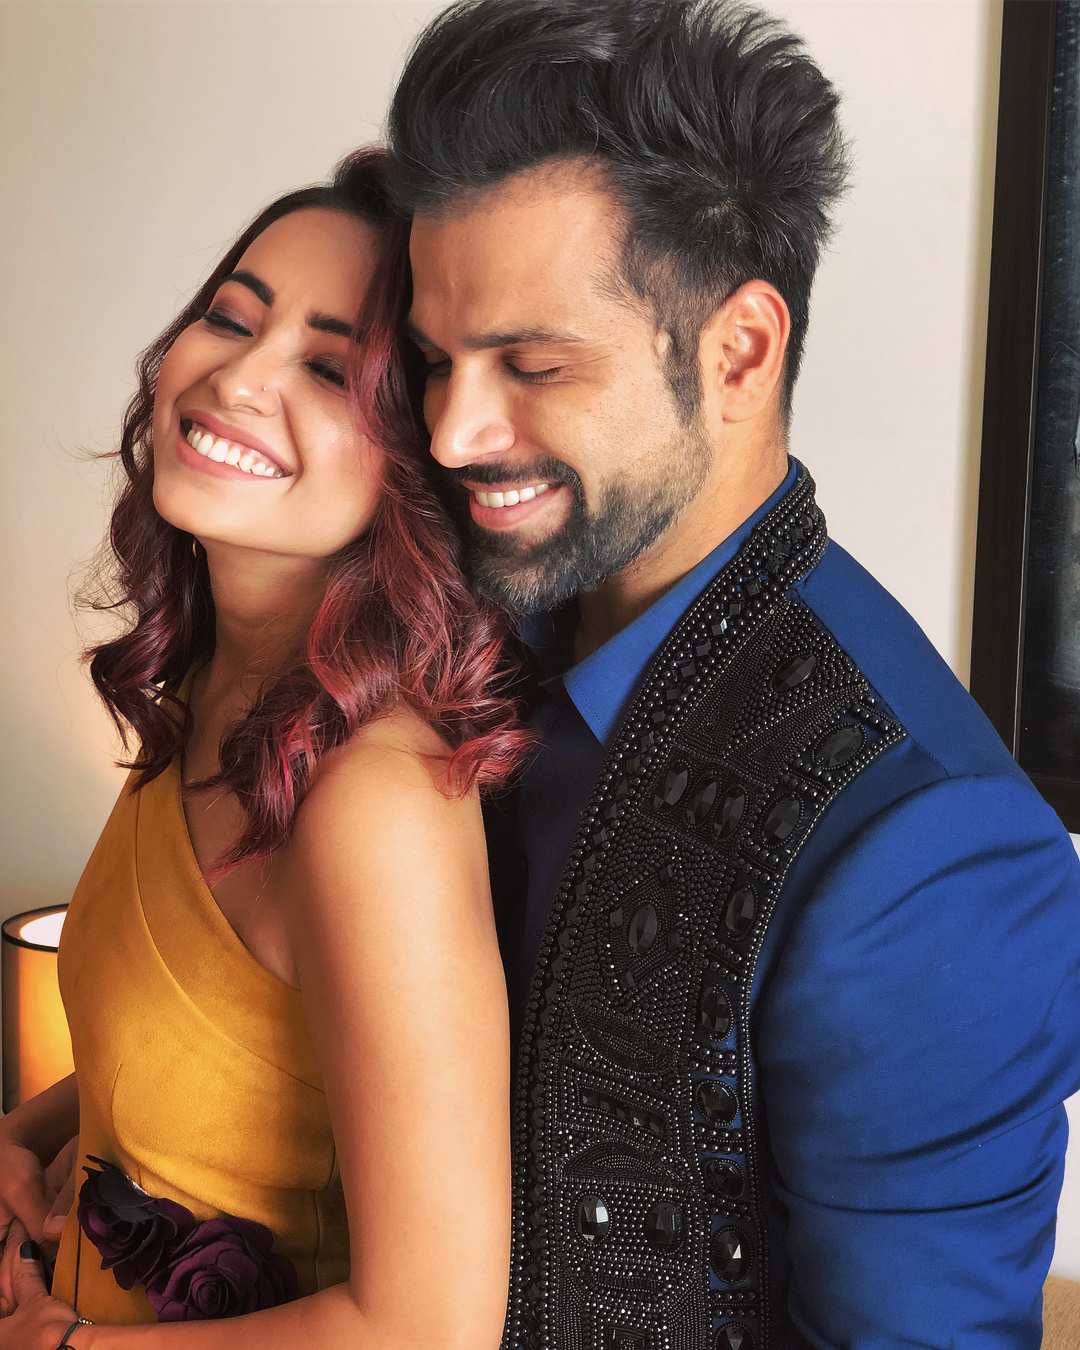 Asha Negi Reveals Her Marriage Plans With BF Rithvik Dhanjani- Happy Couple